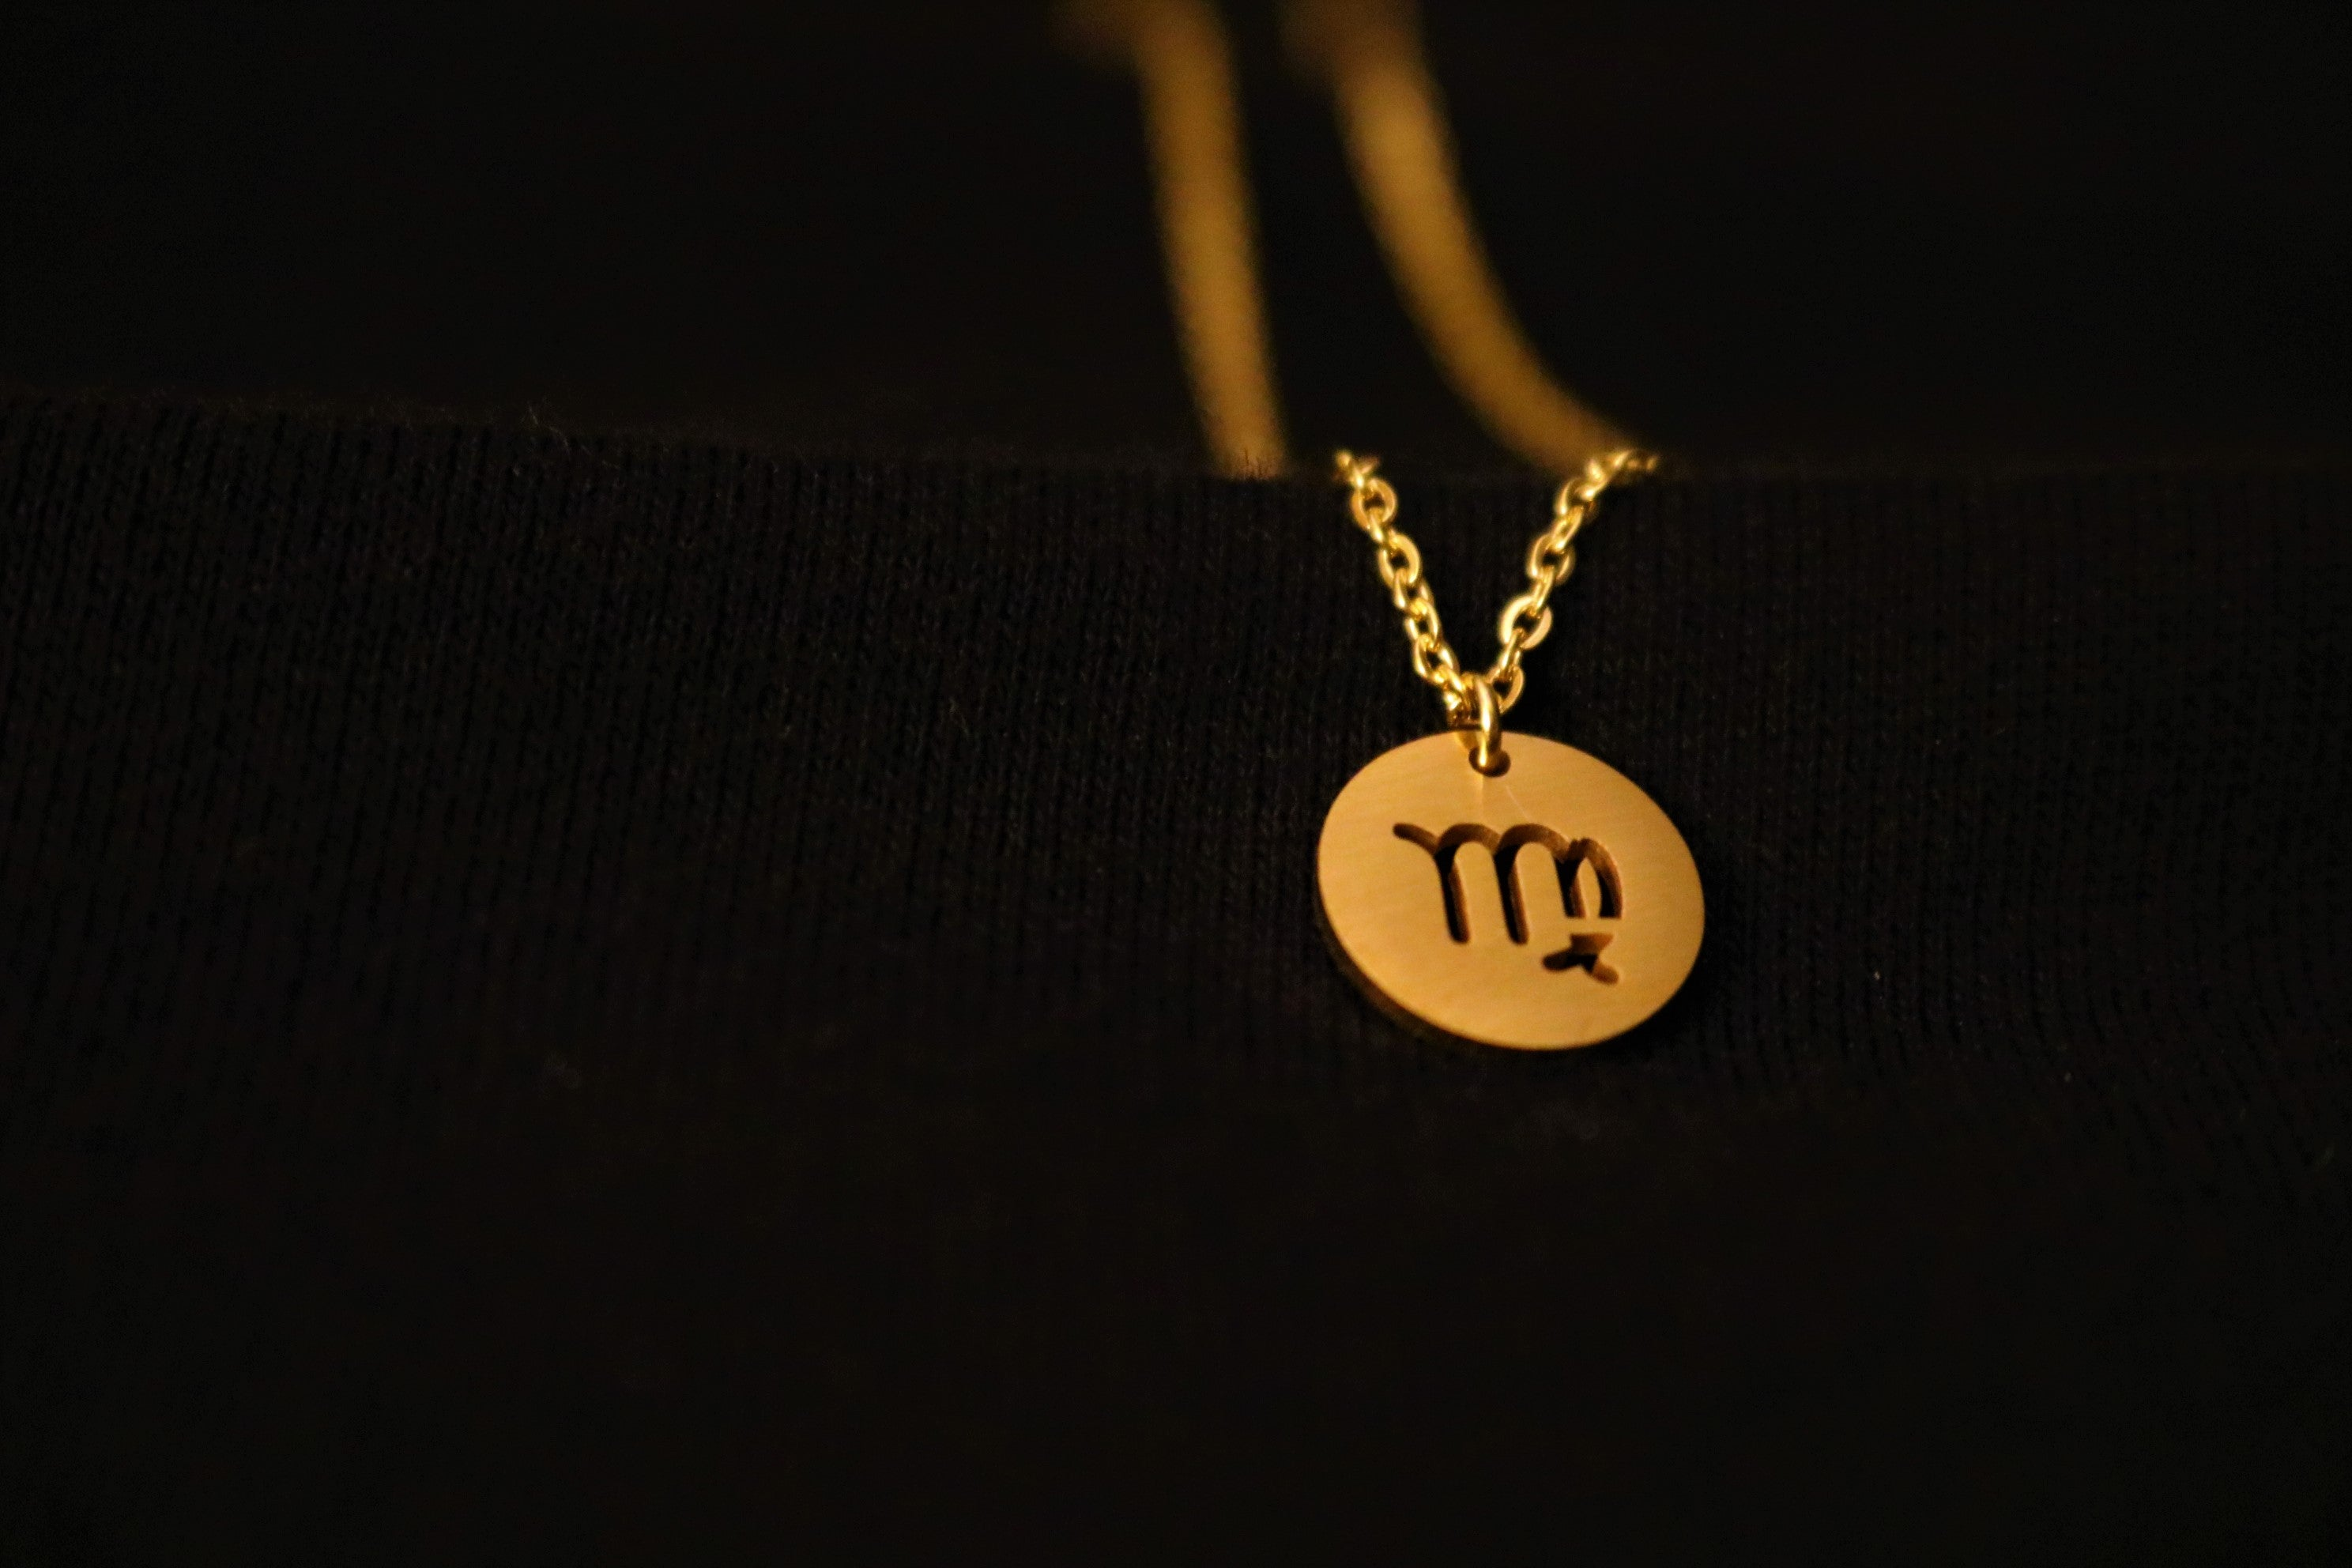 Gold Virgo Zodiac Horoscope Necklace